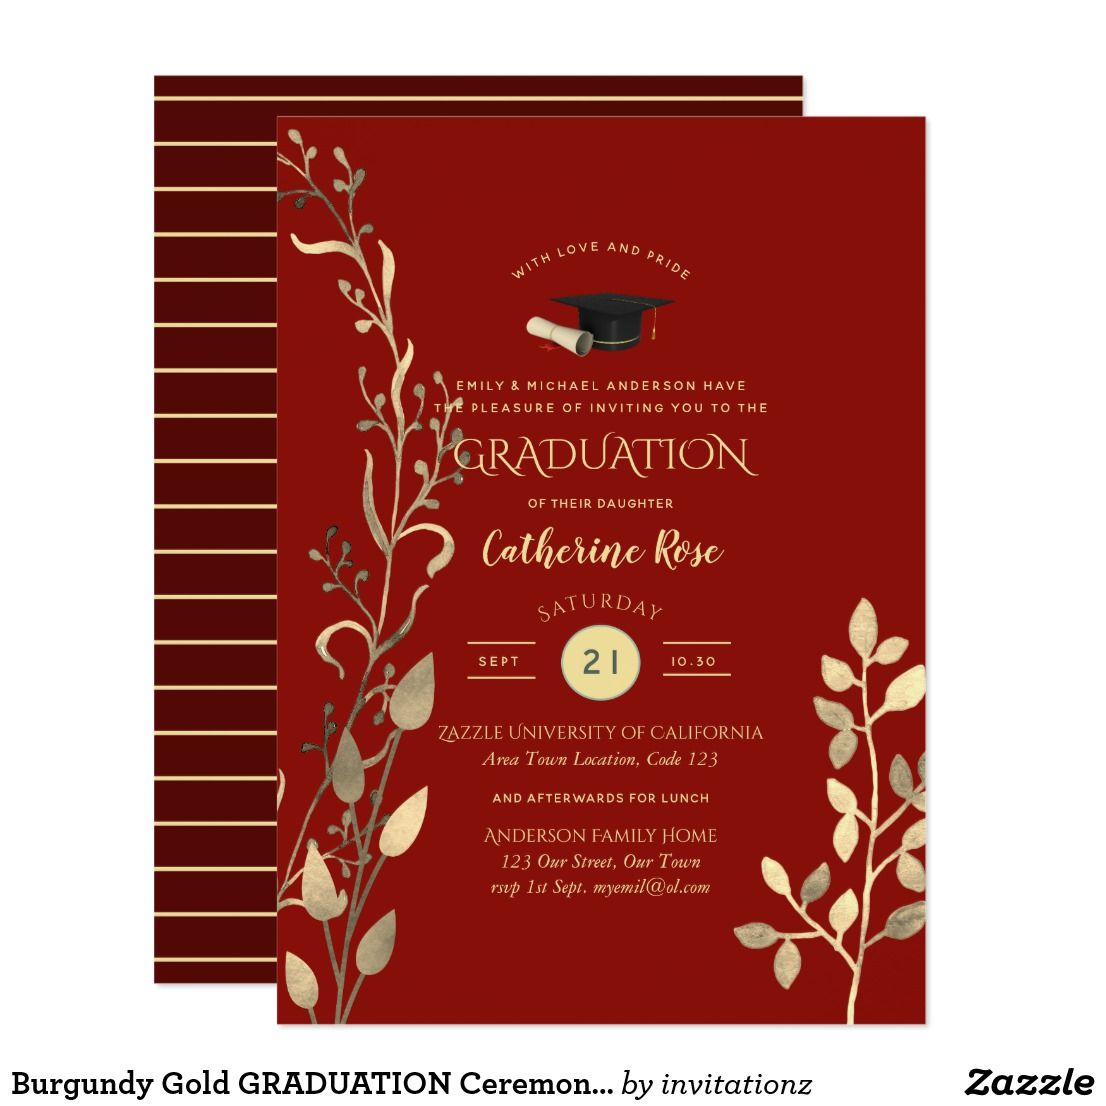 Burgundy Gold GRADUATION Ceremony Party Invitation | Gift Ideas ...